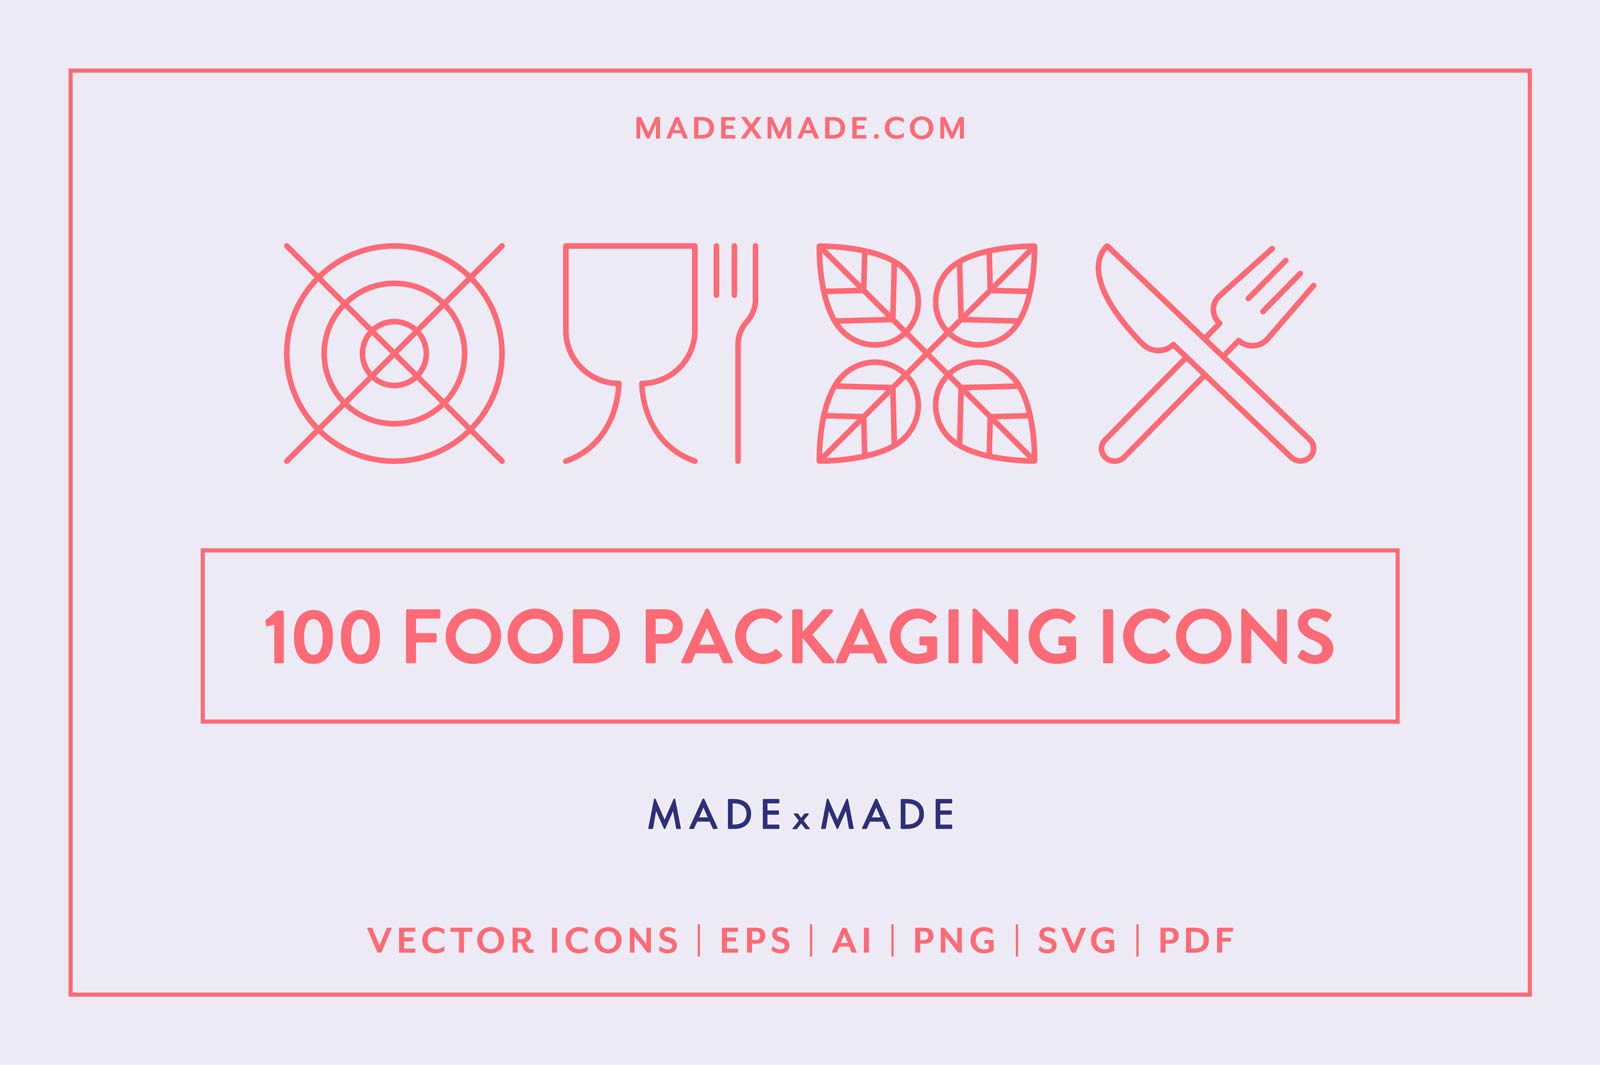 made x made icons food packaging